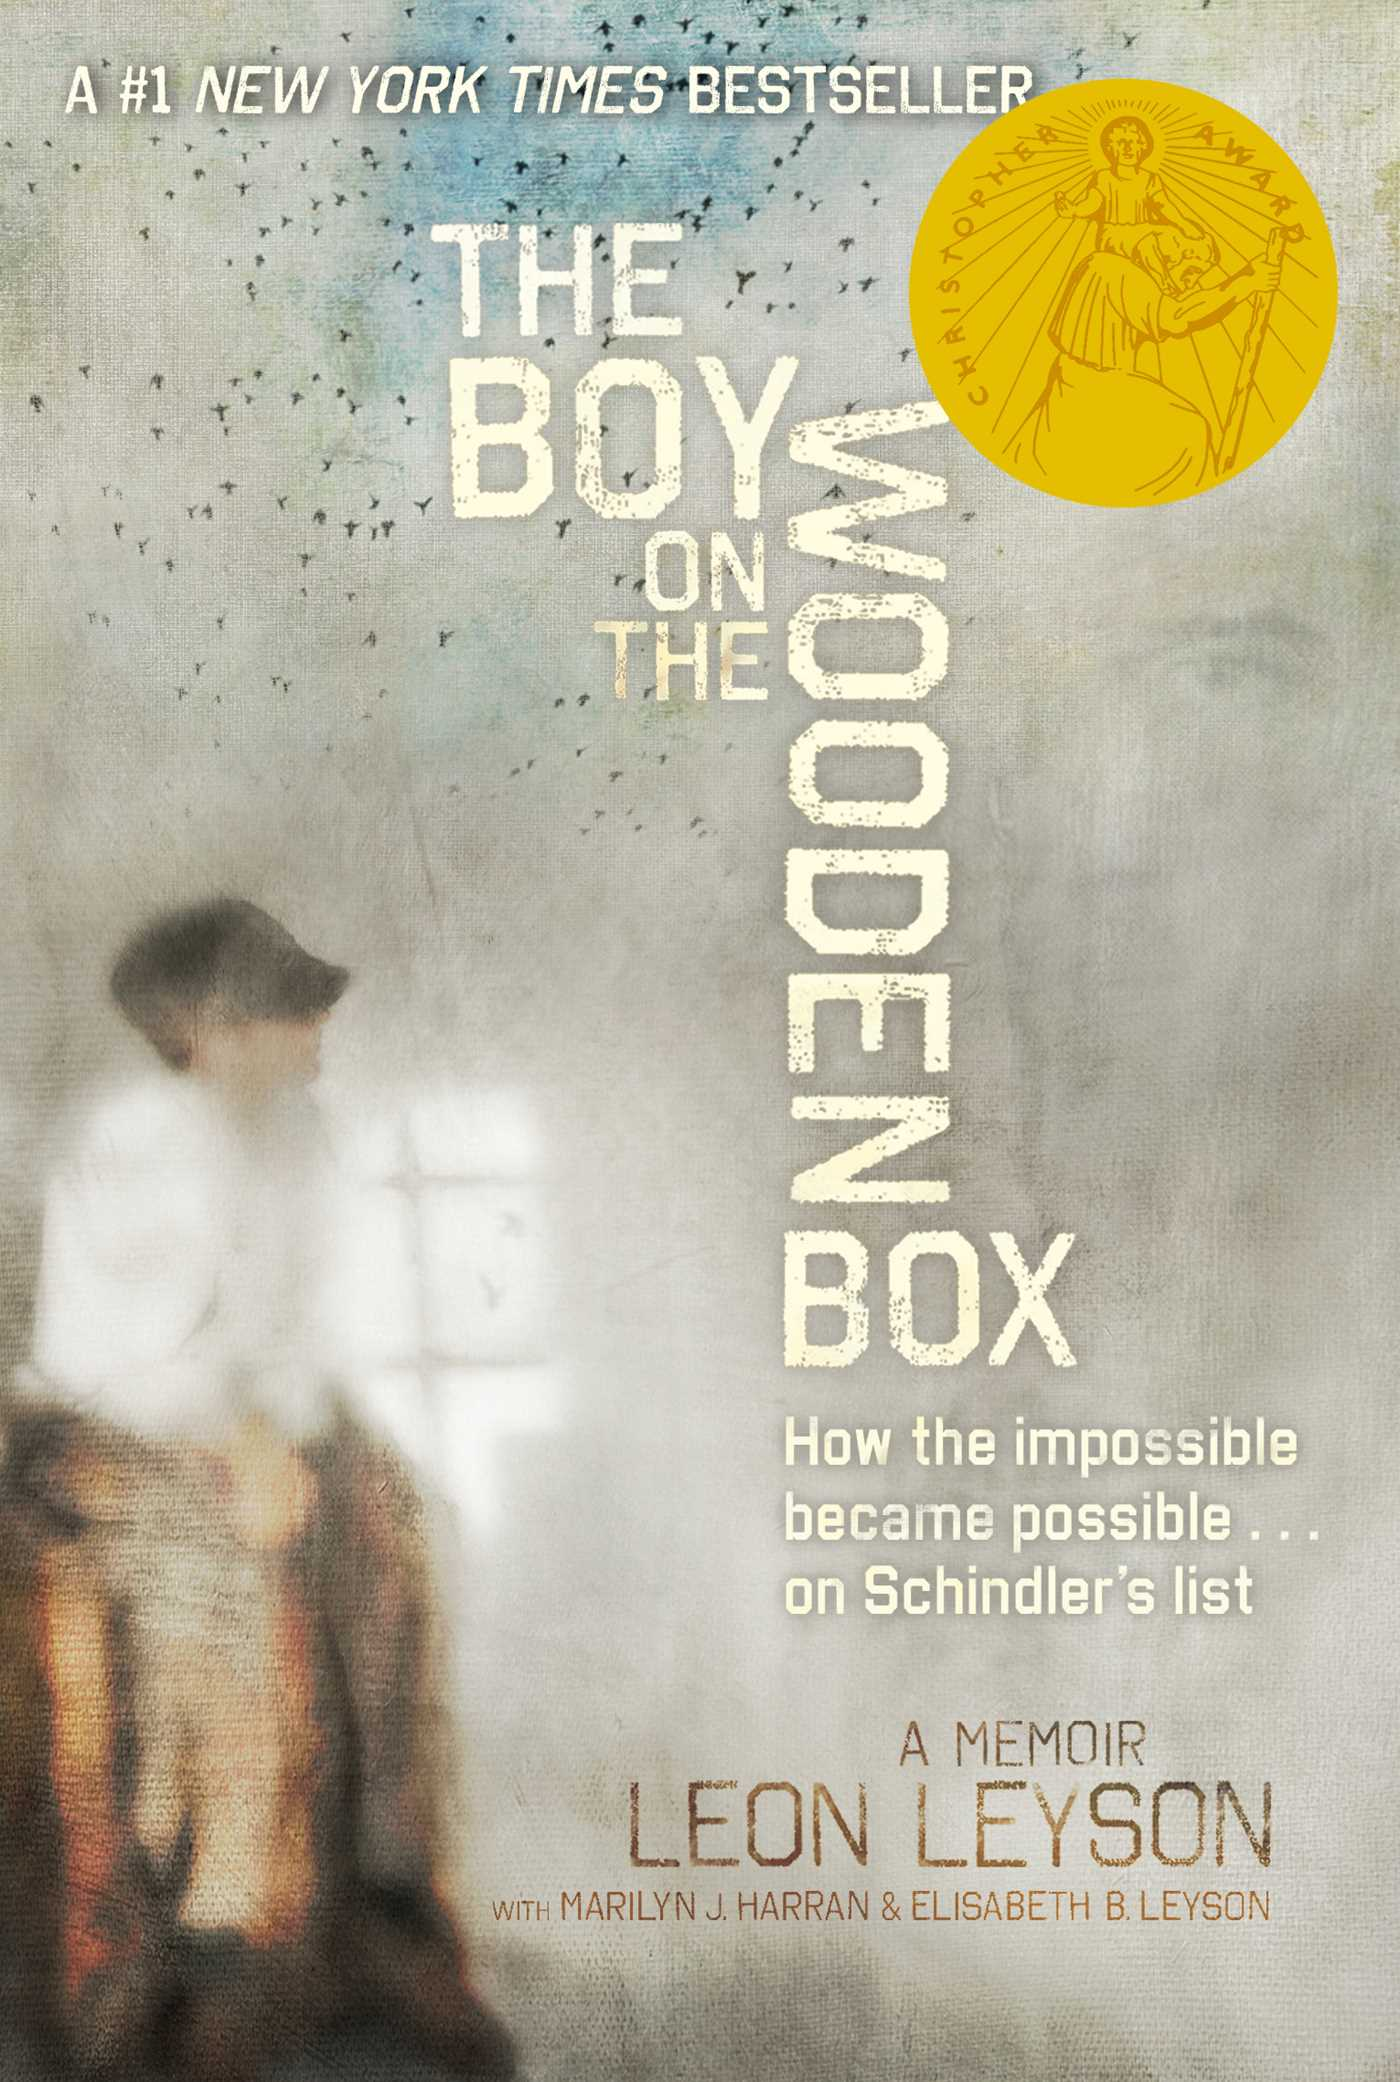 Book Cover Image (jpg): The Boy on the Wooden Box